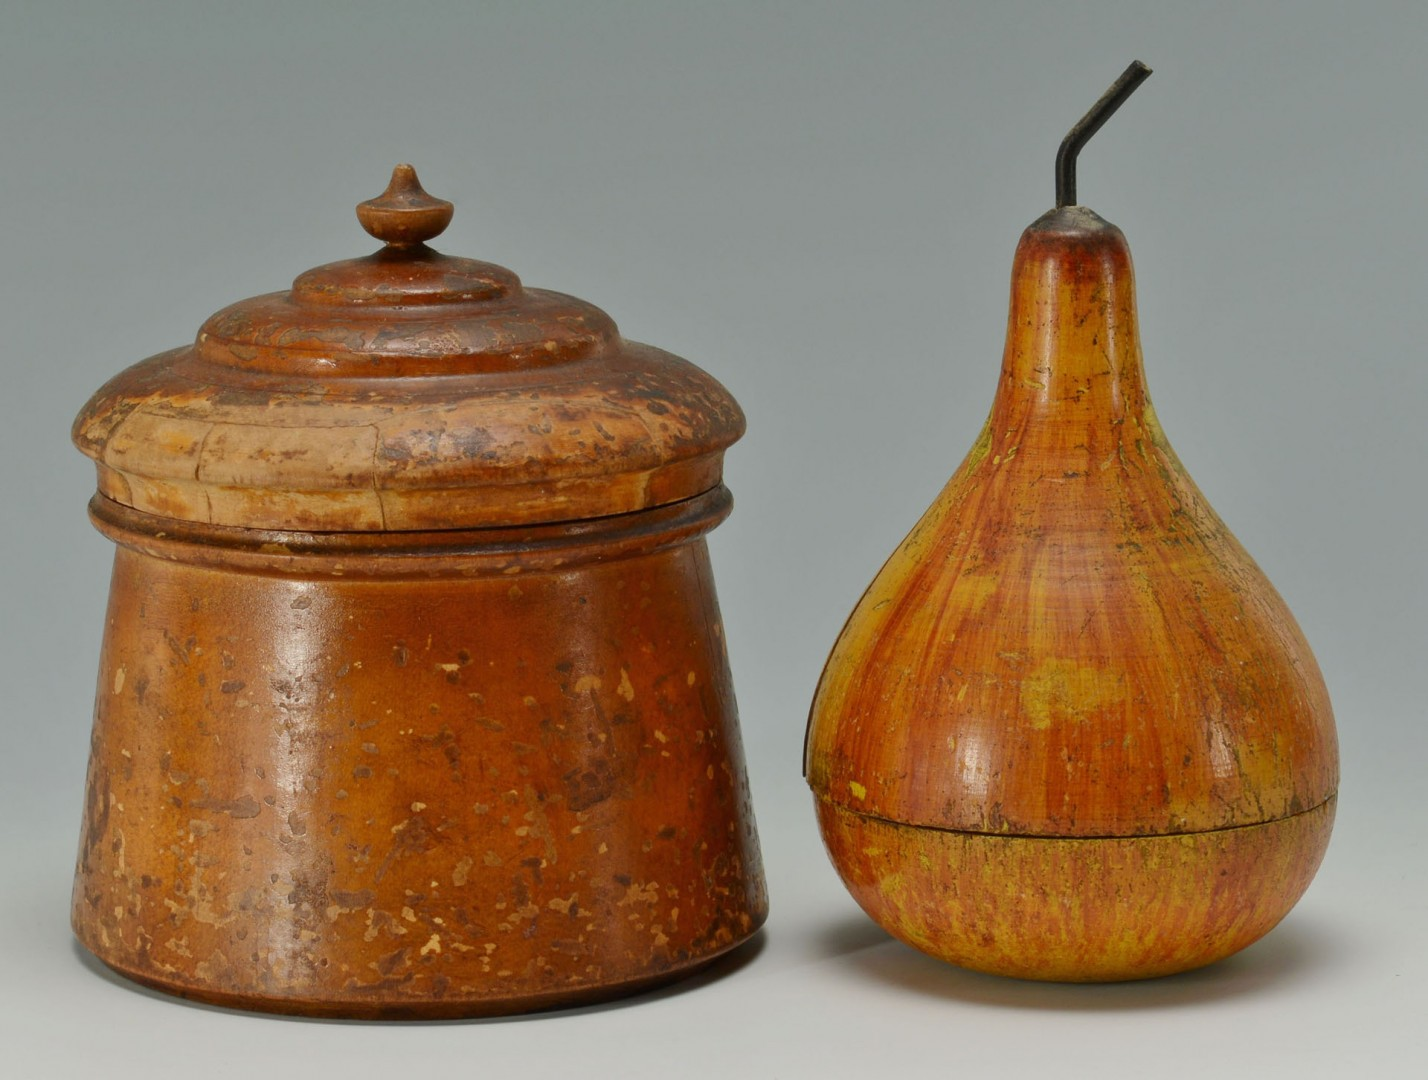 3 pcs early woodenware incl. pear, tea caddy and treen